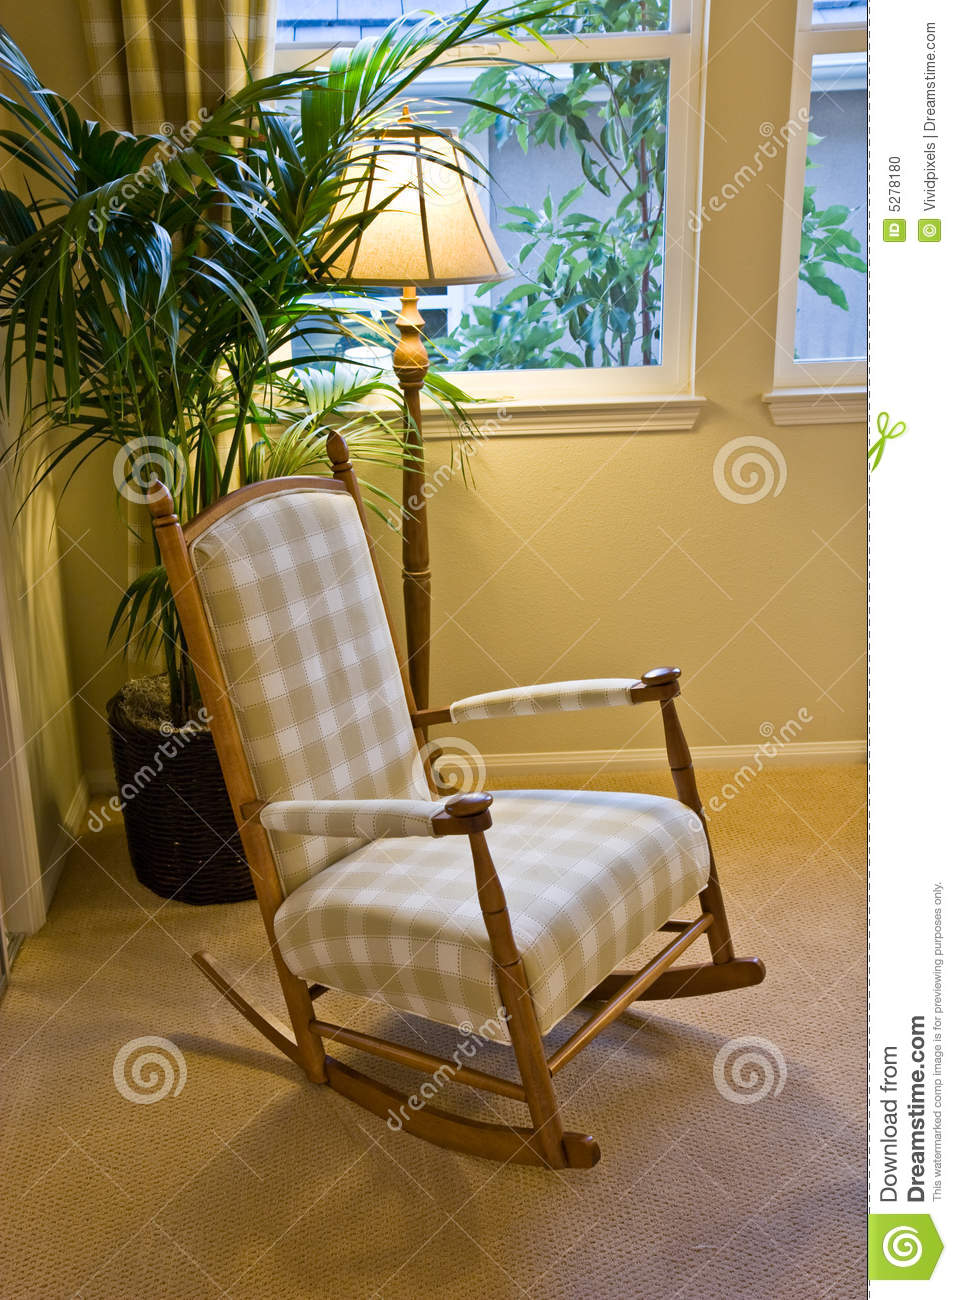 Rocking chair nexxt to window stock photo image 5278180 for Chair next to window